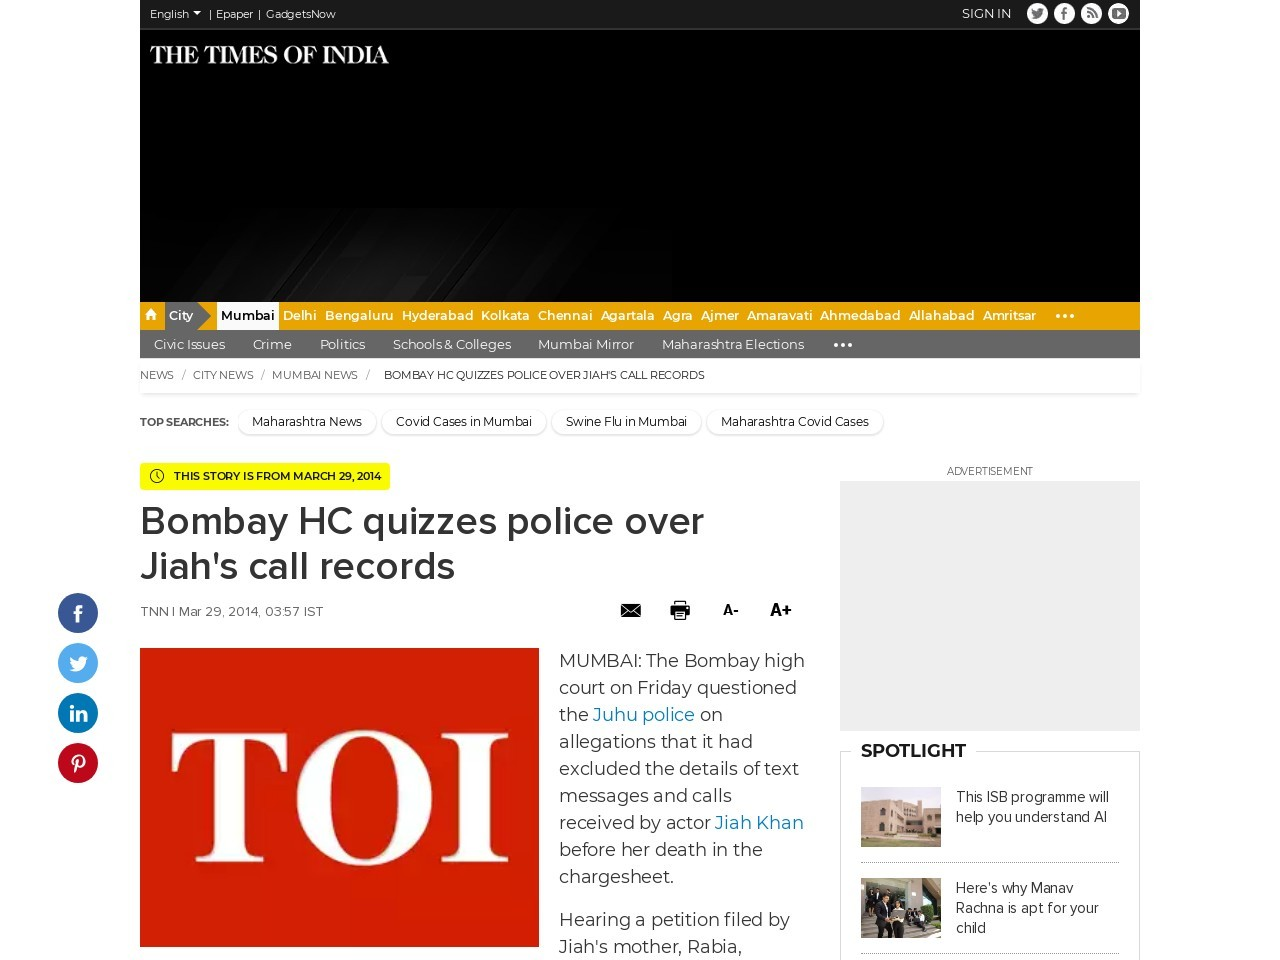 Bombay HC quizzes police over Jiah's call records